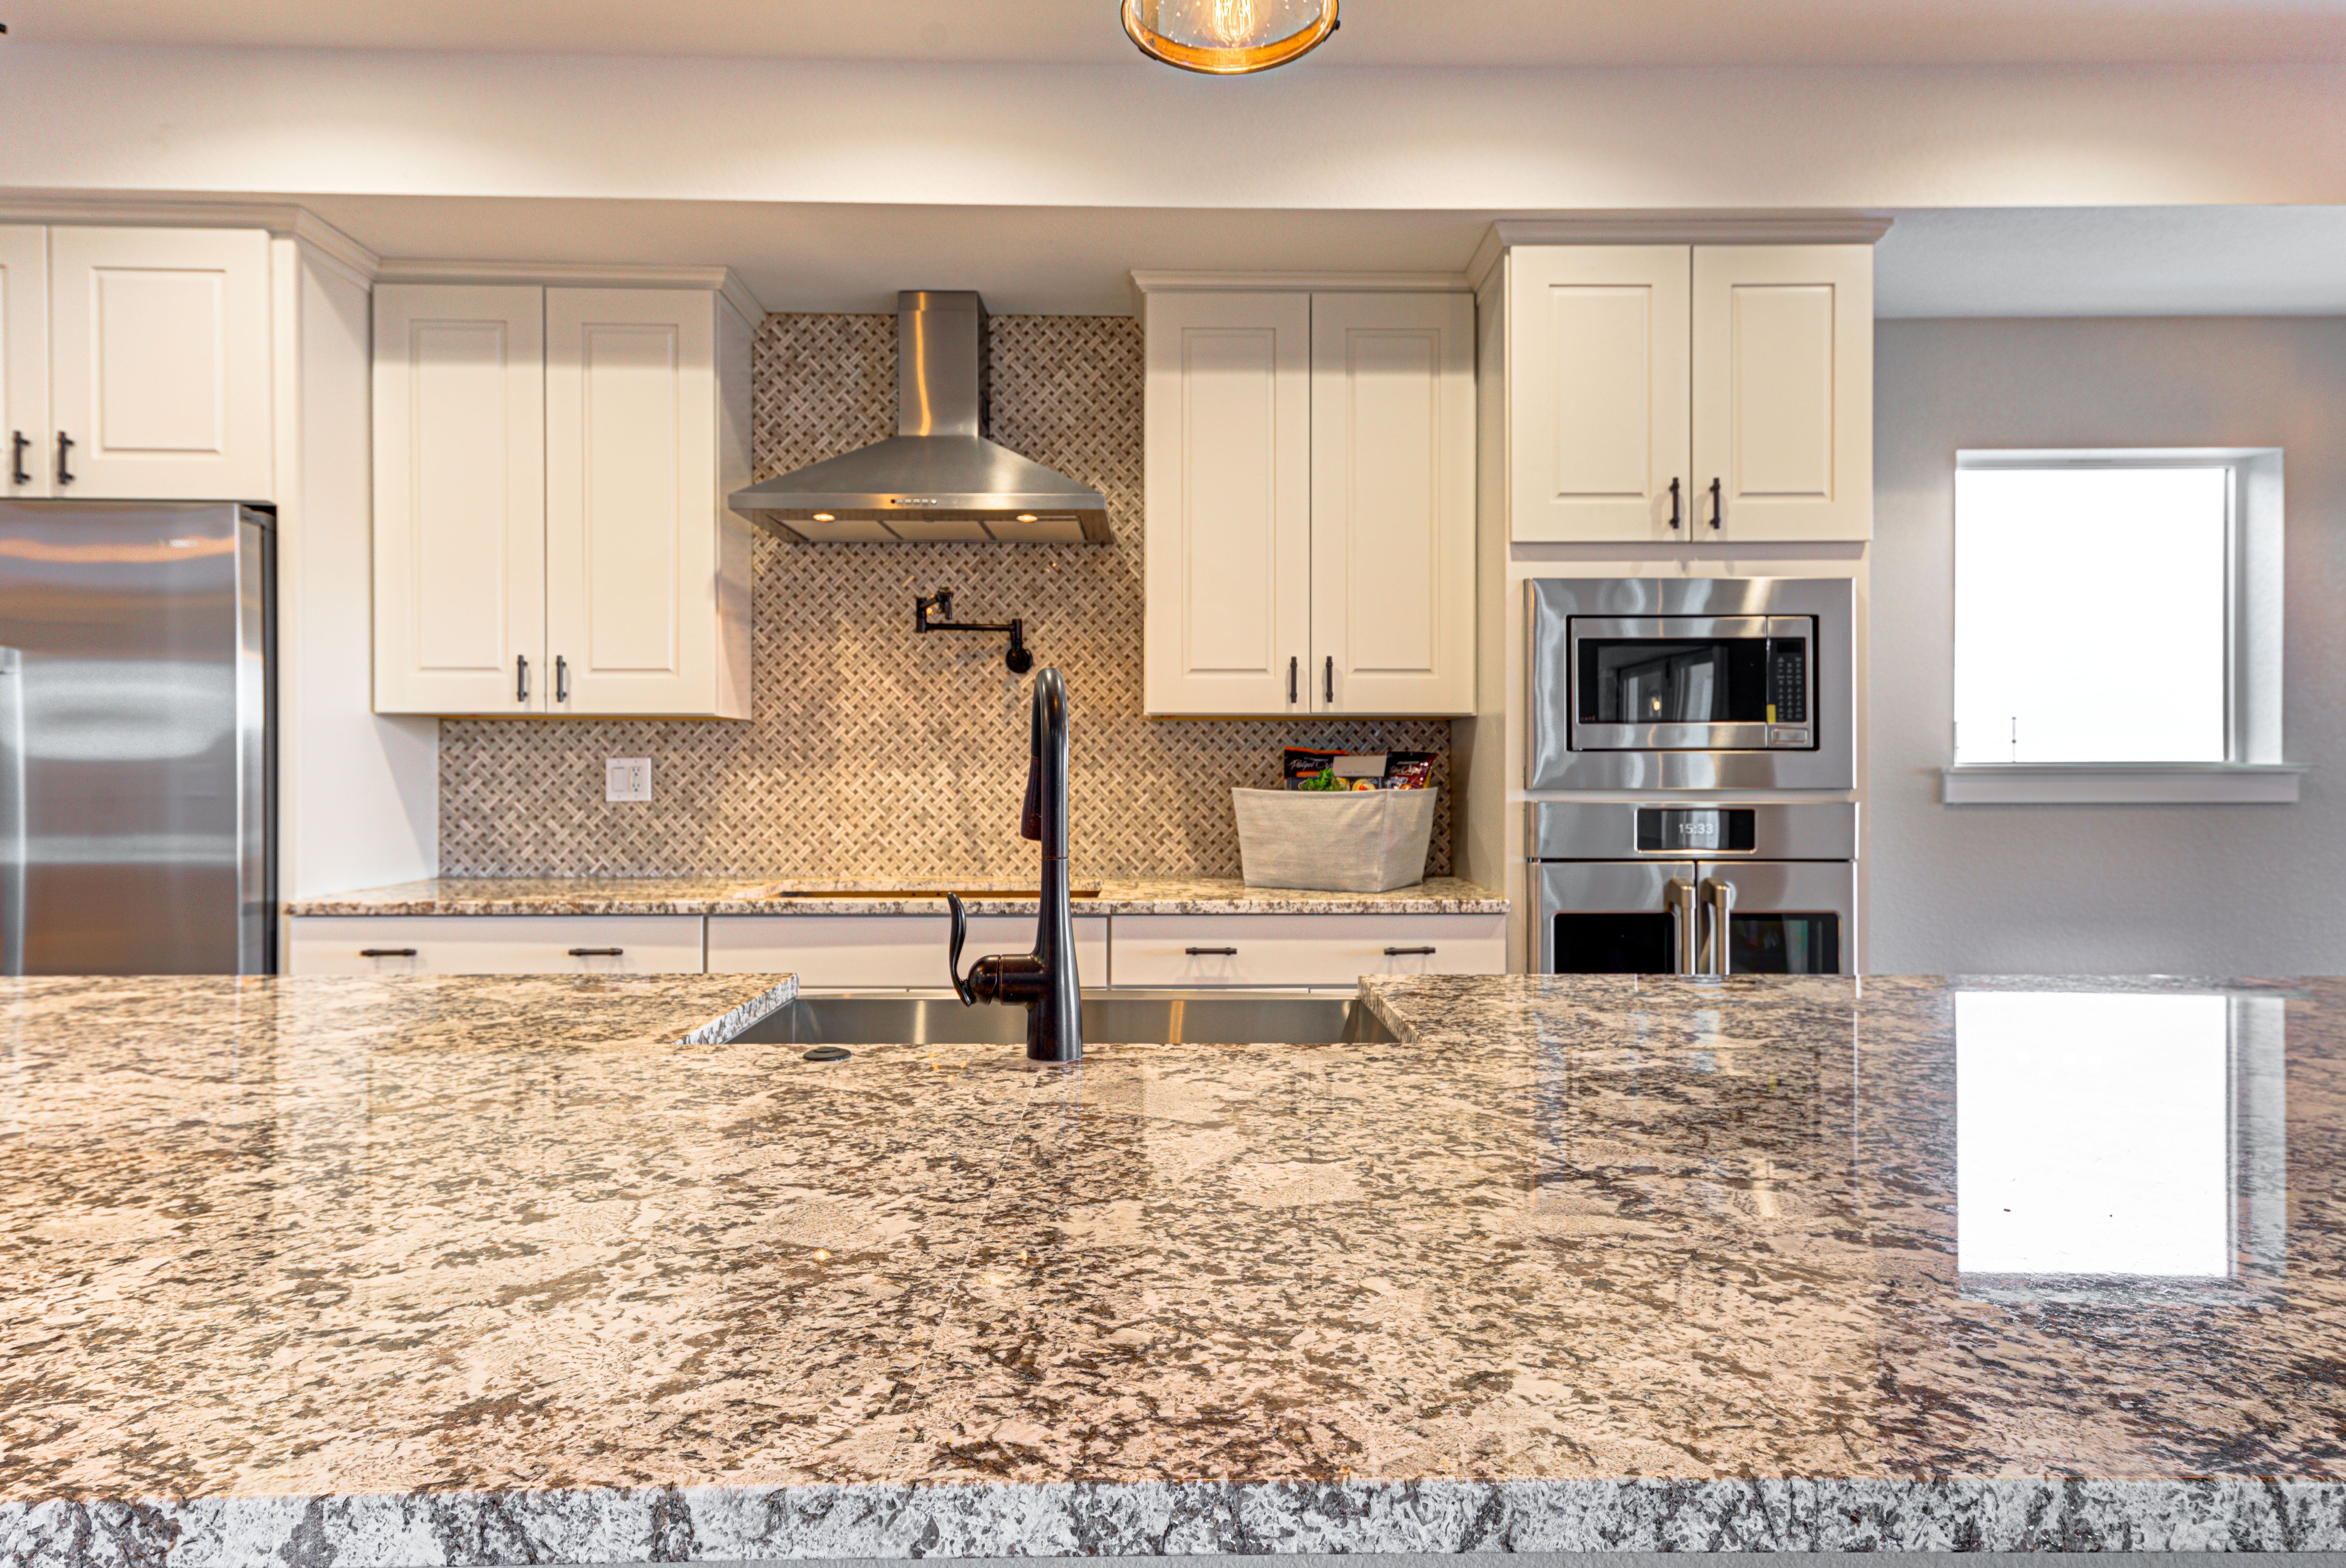 Kitchen featured in the Peak By Black Oak Homes in Colorado Springs, CO